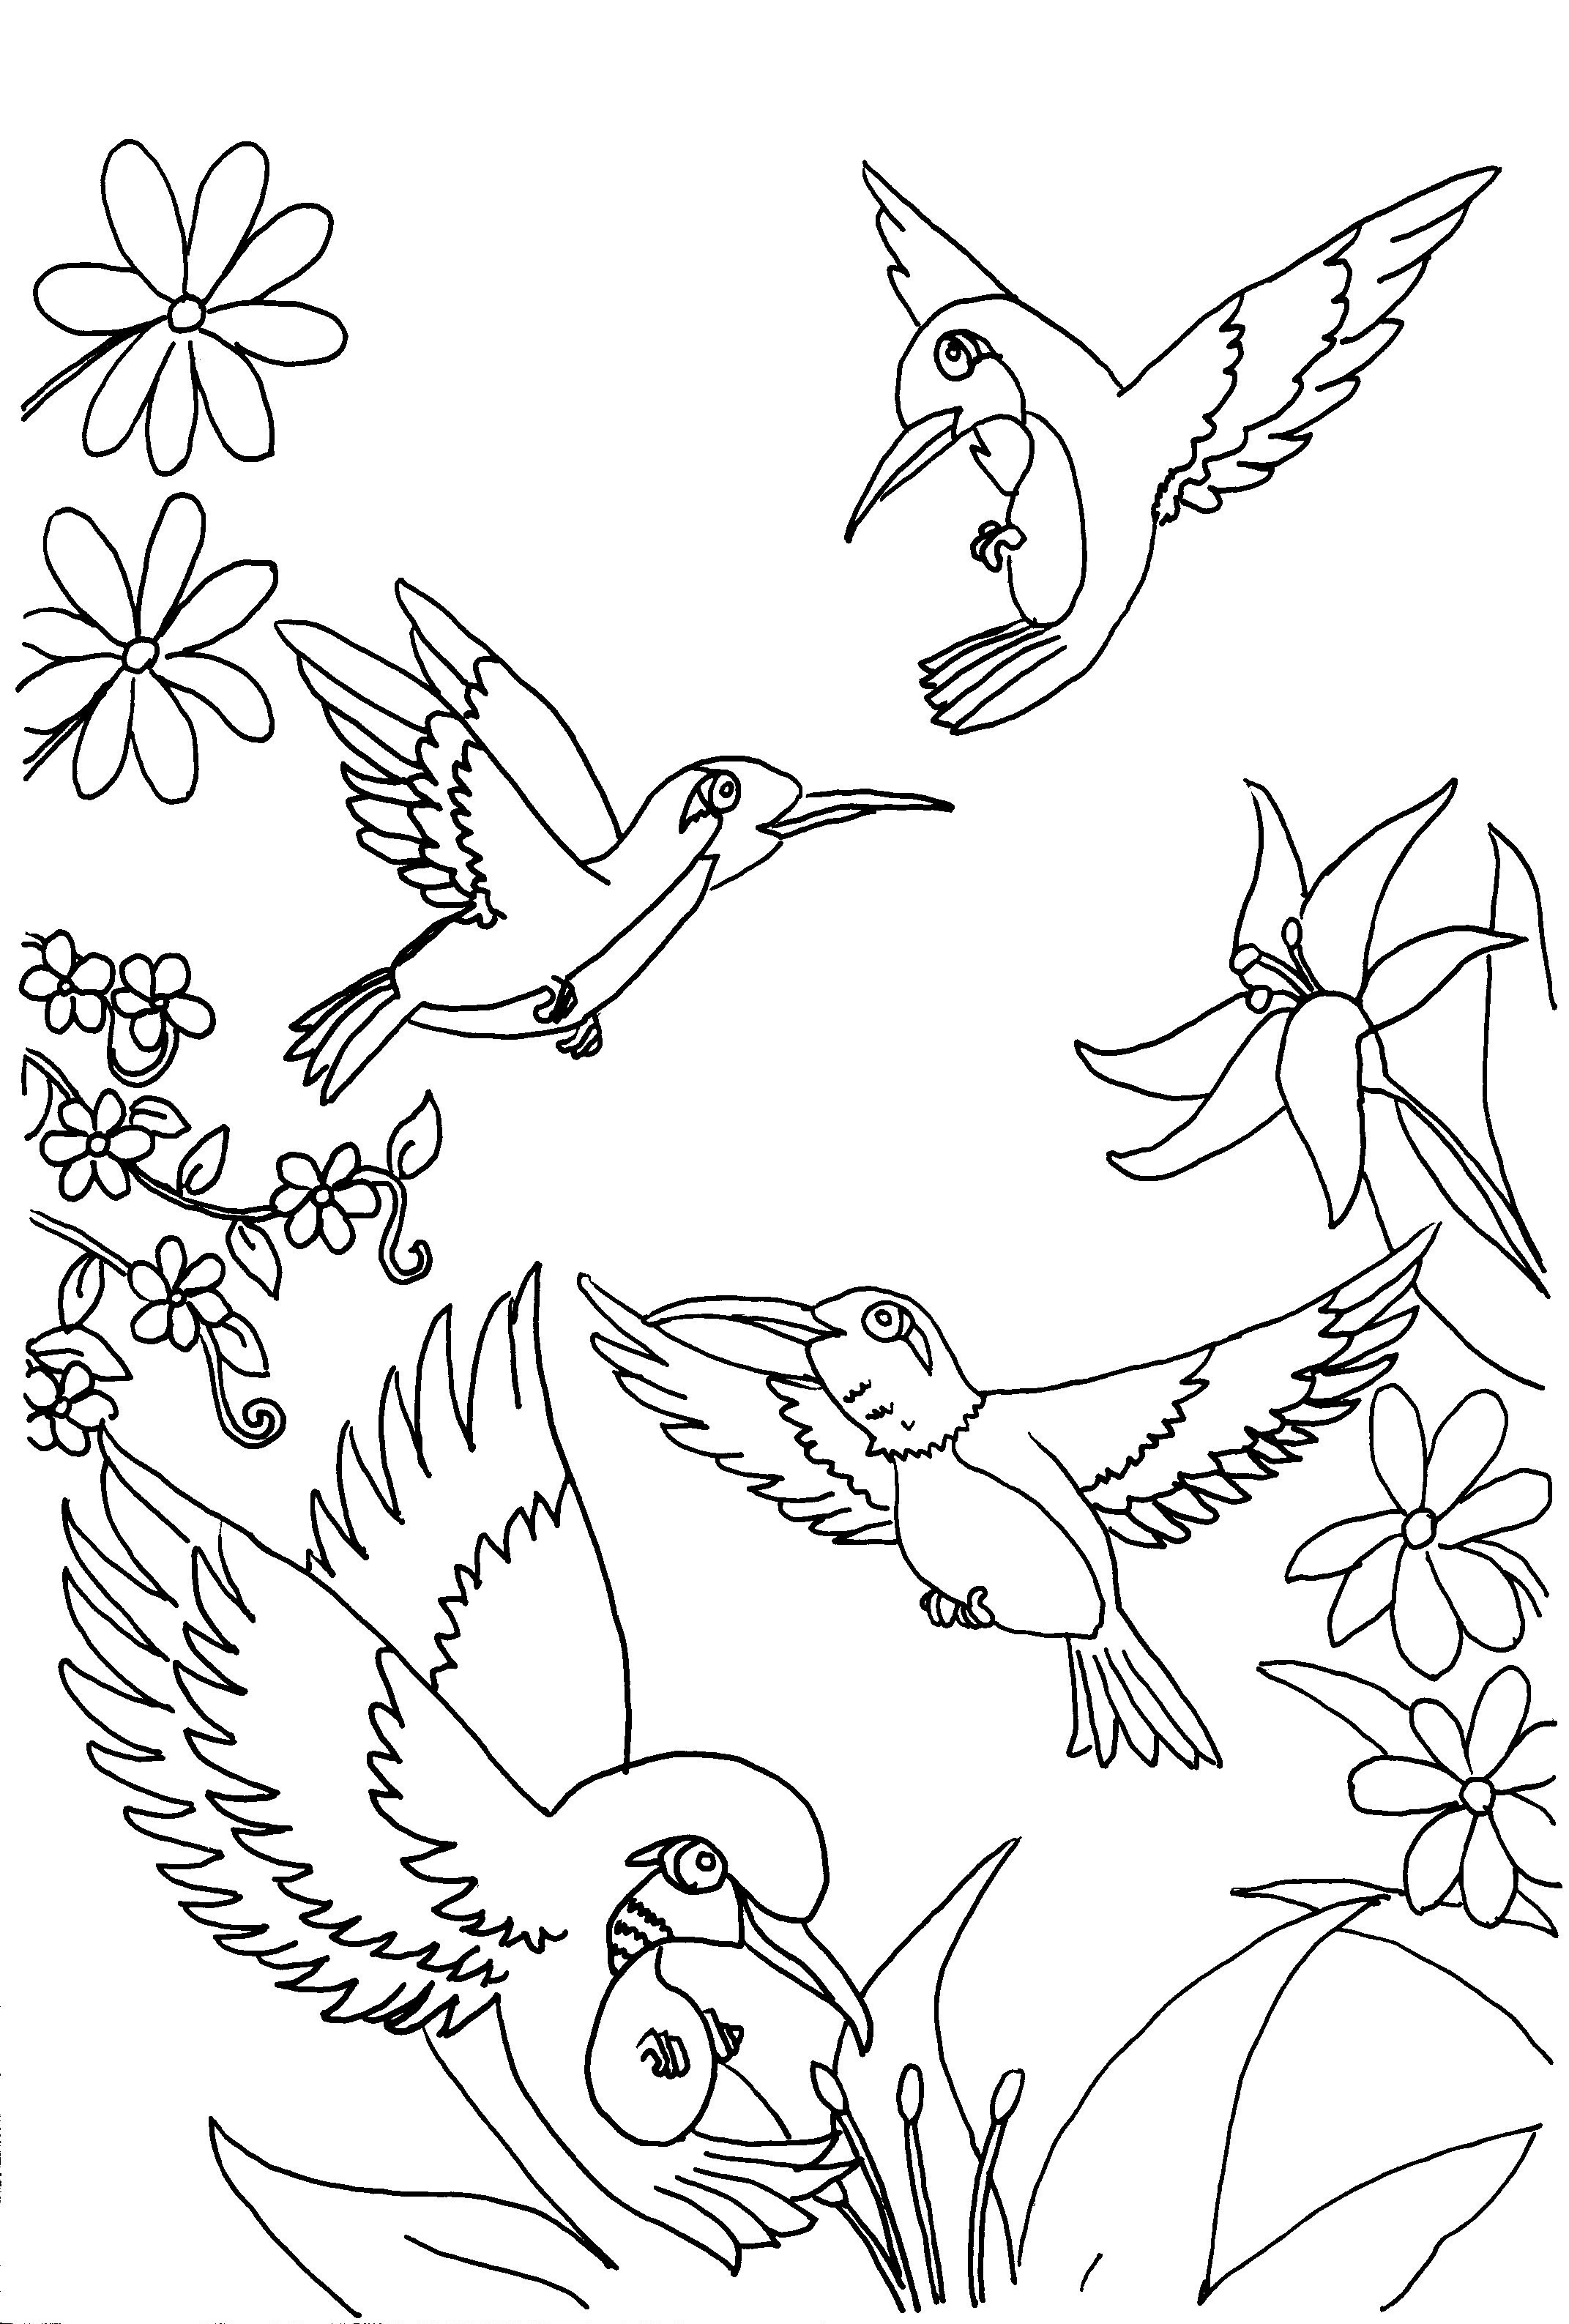 coloring pages for kids birds 15 best printable angry birds colouring pages for kids for coloring kids pages birds